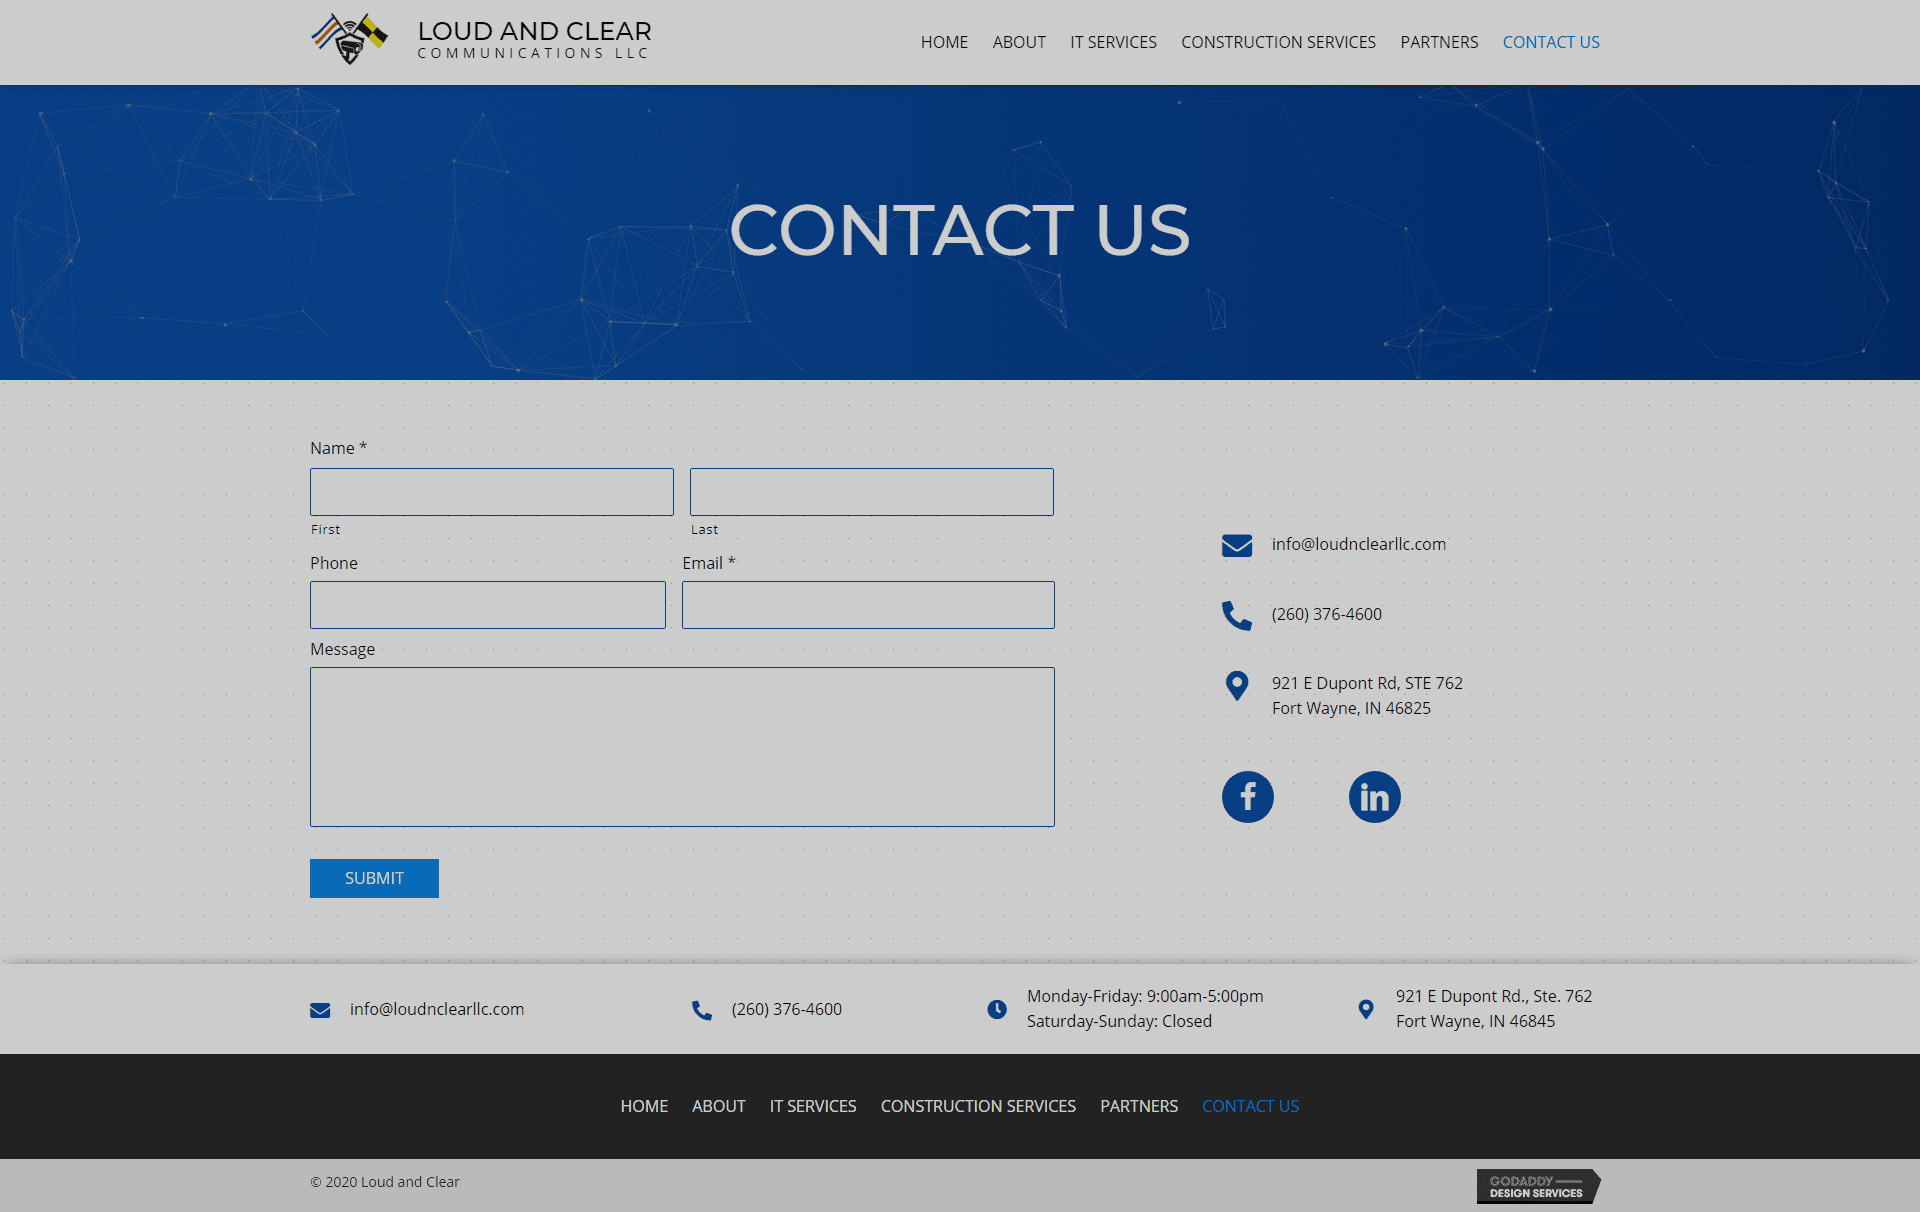 Loud and Clear LLC Contact Page